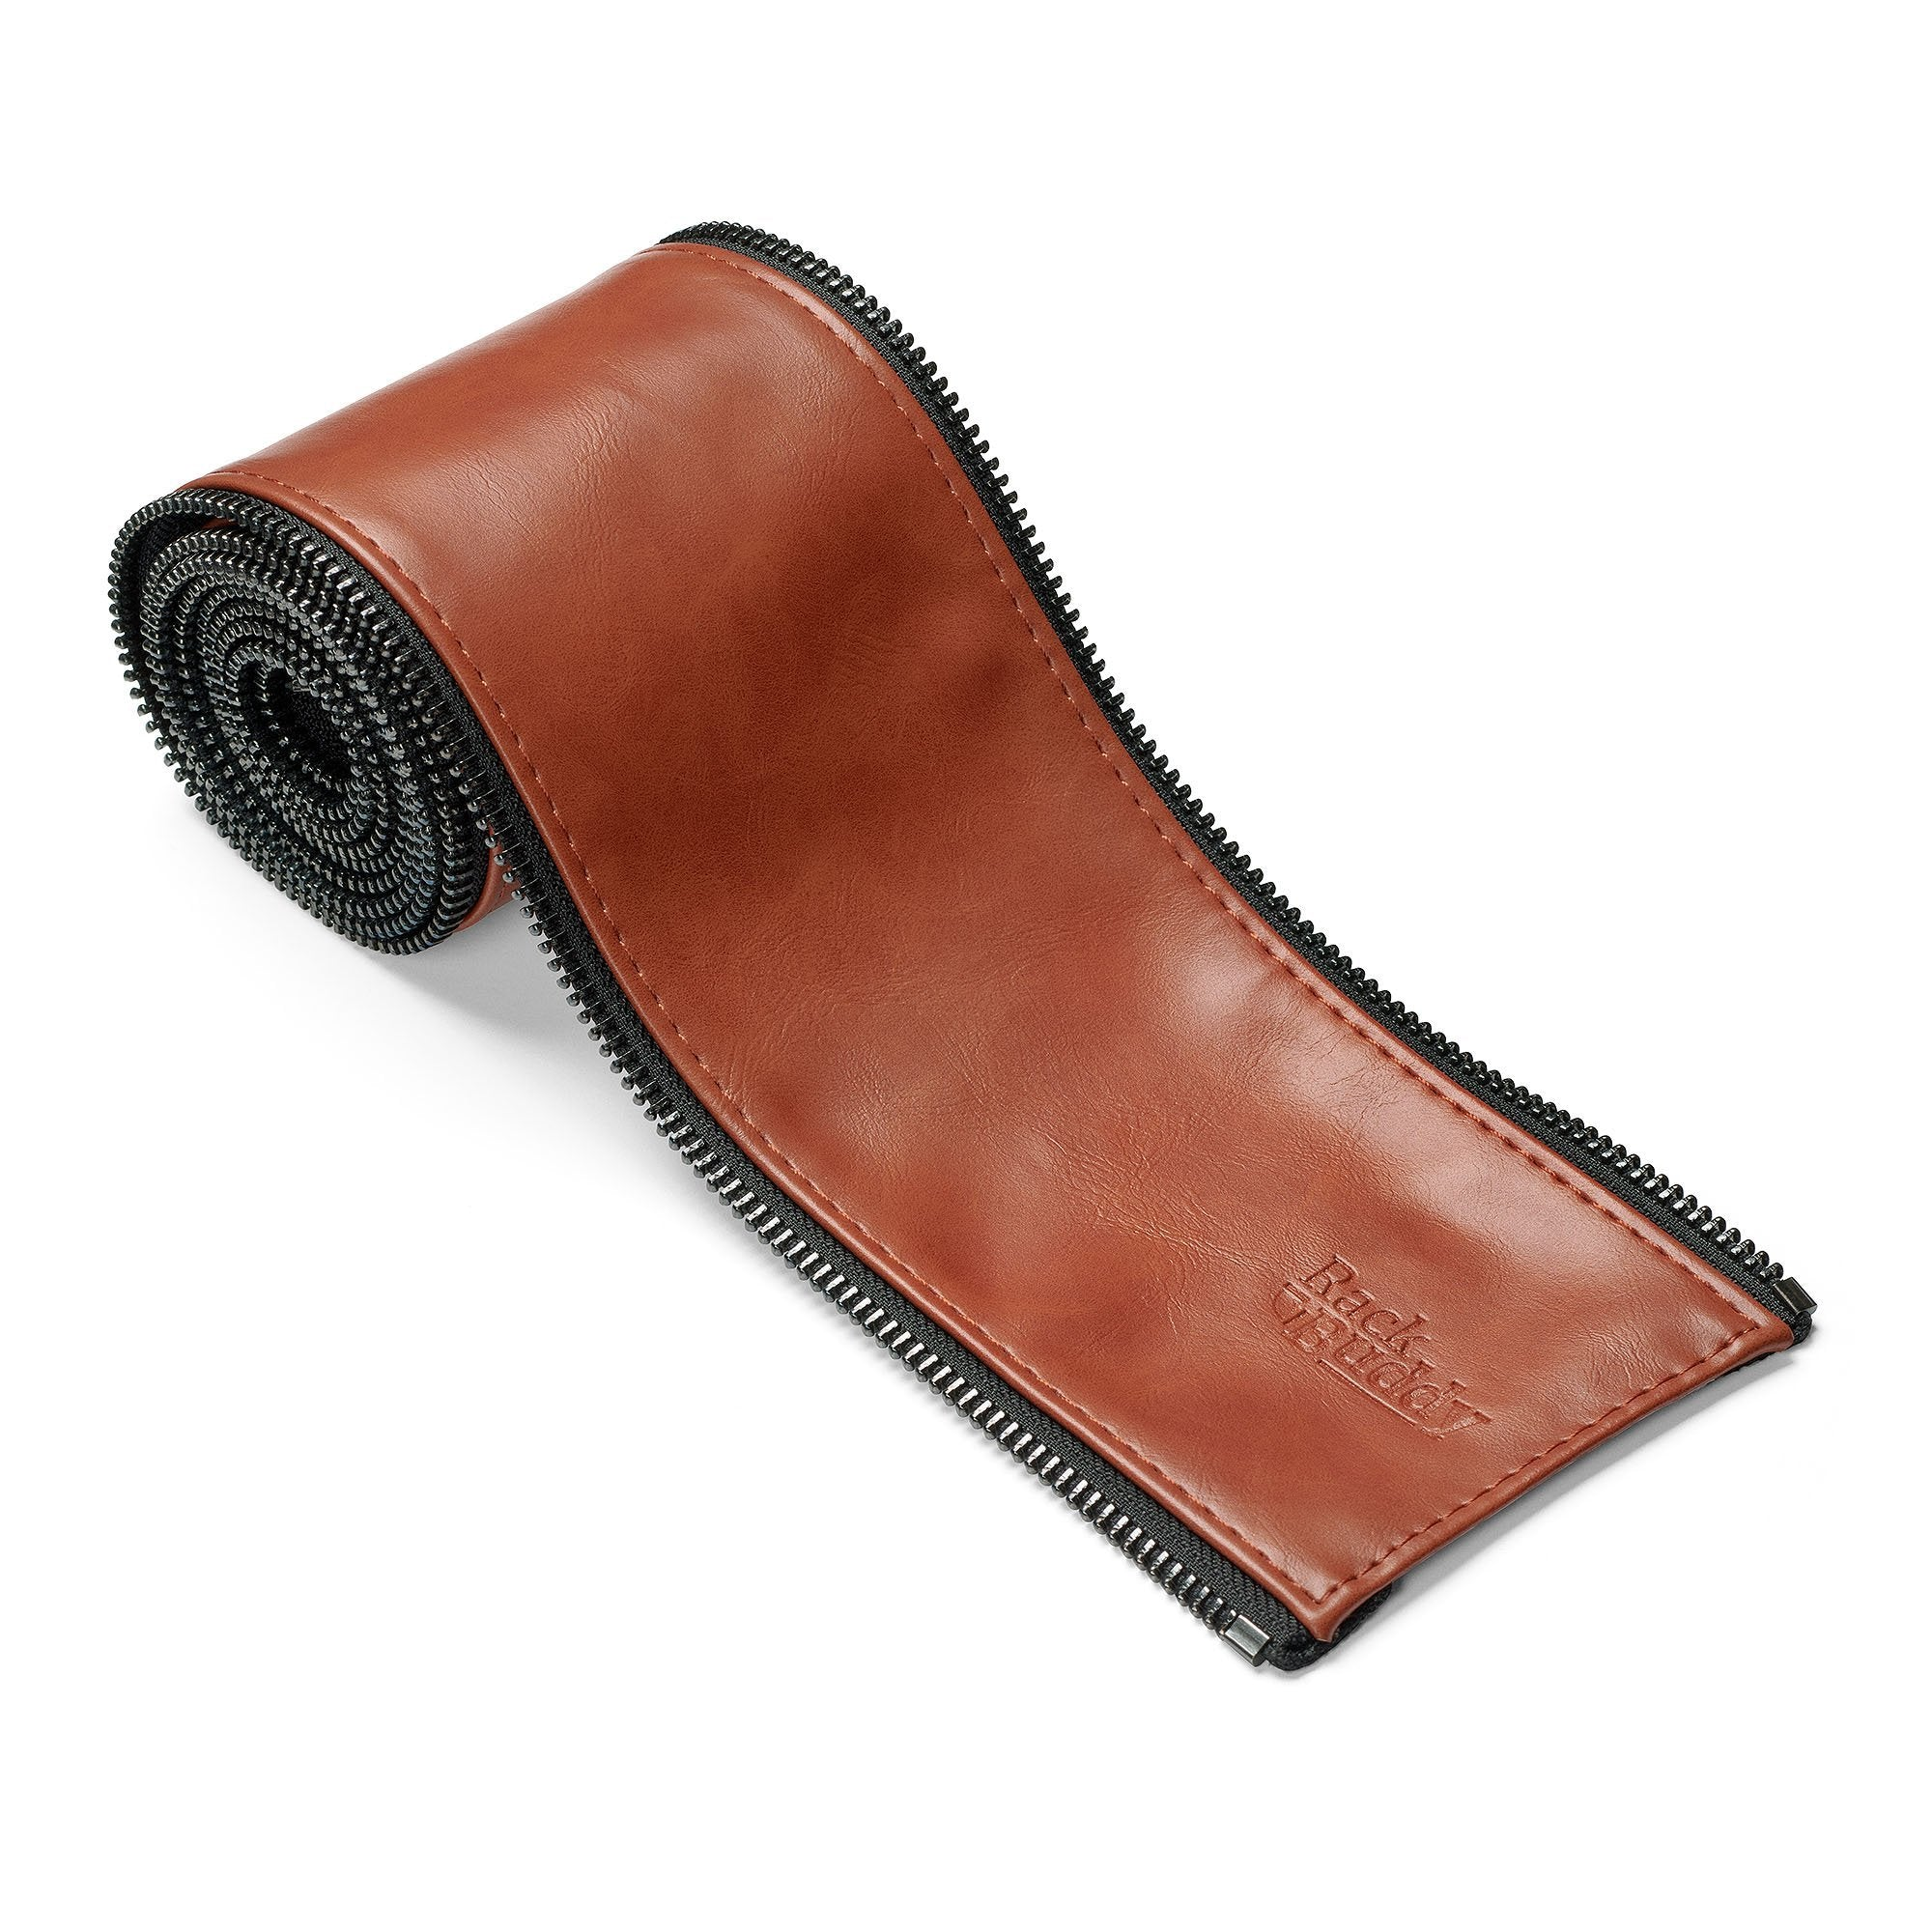 RackBuddy Leatherish - Light brown PU-leather sleeve